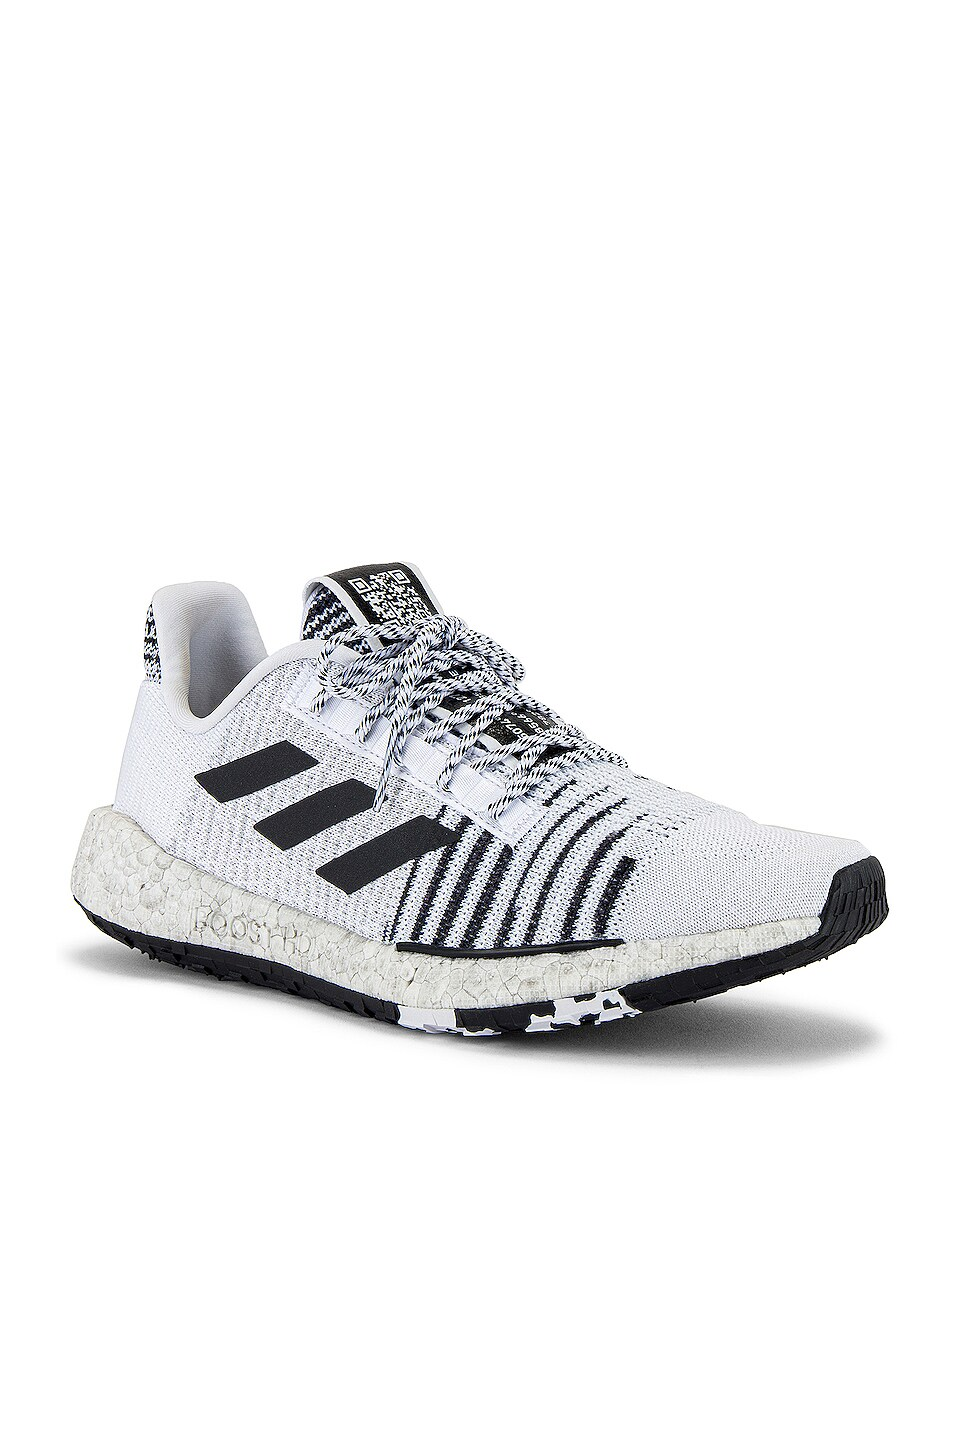 adidas by MISSONI Pulseboost HD in White & Black & Grey